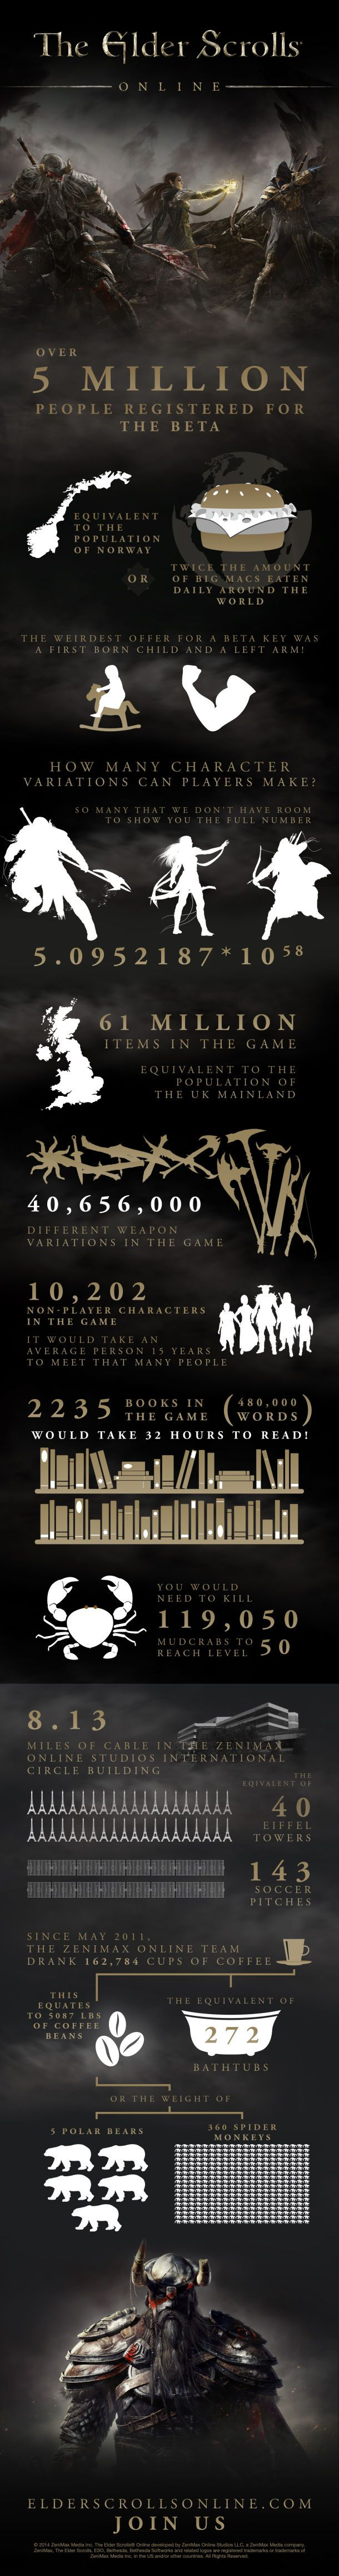 Elder Scrolls Online : Interesting Facts #infographic